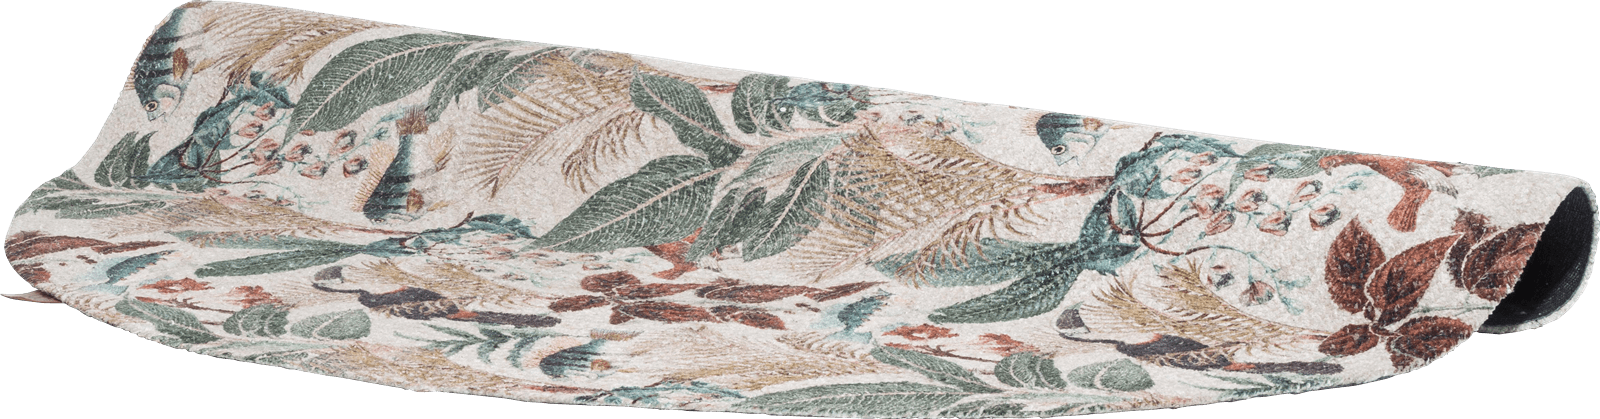 XOOON - Coco Maison - summer jungle rug d150cm